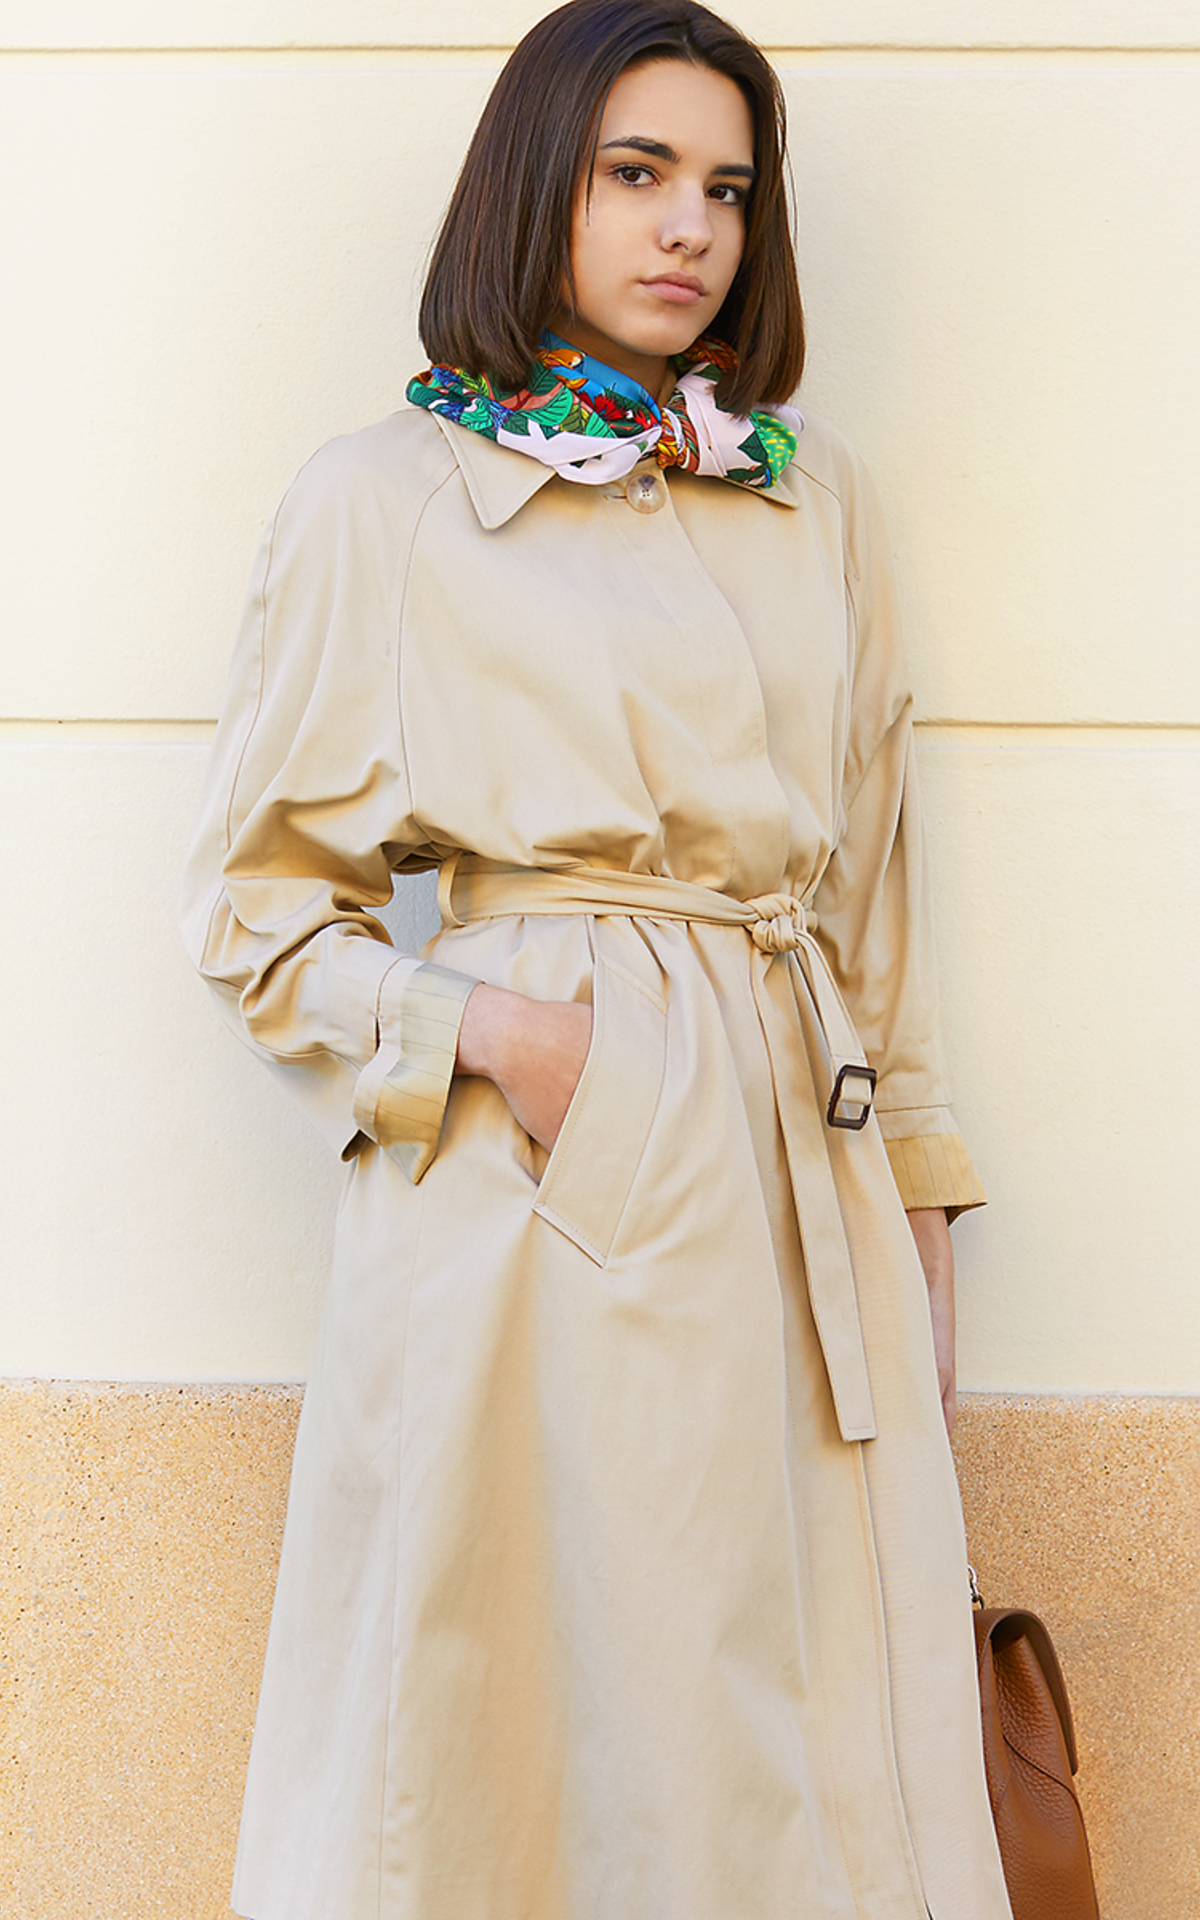 Woman wearing a camel coat and sunglasses